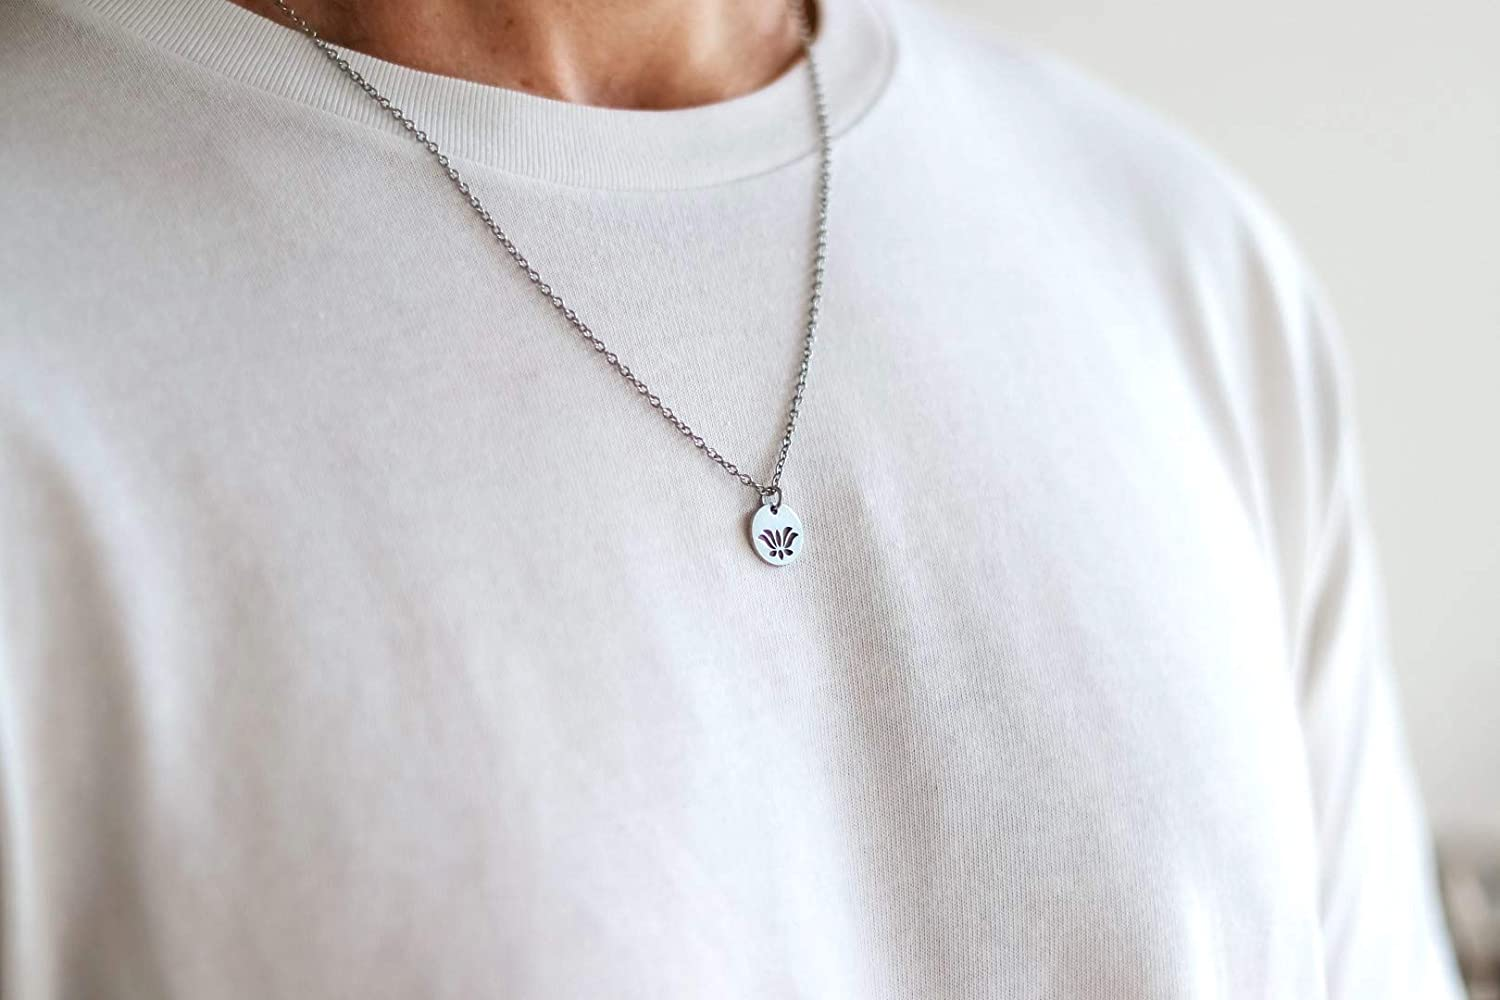 Stainless steel chain necklace 0.47 inch